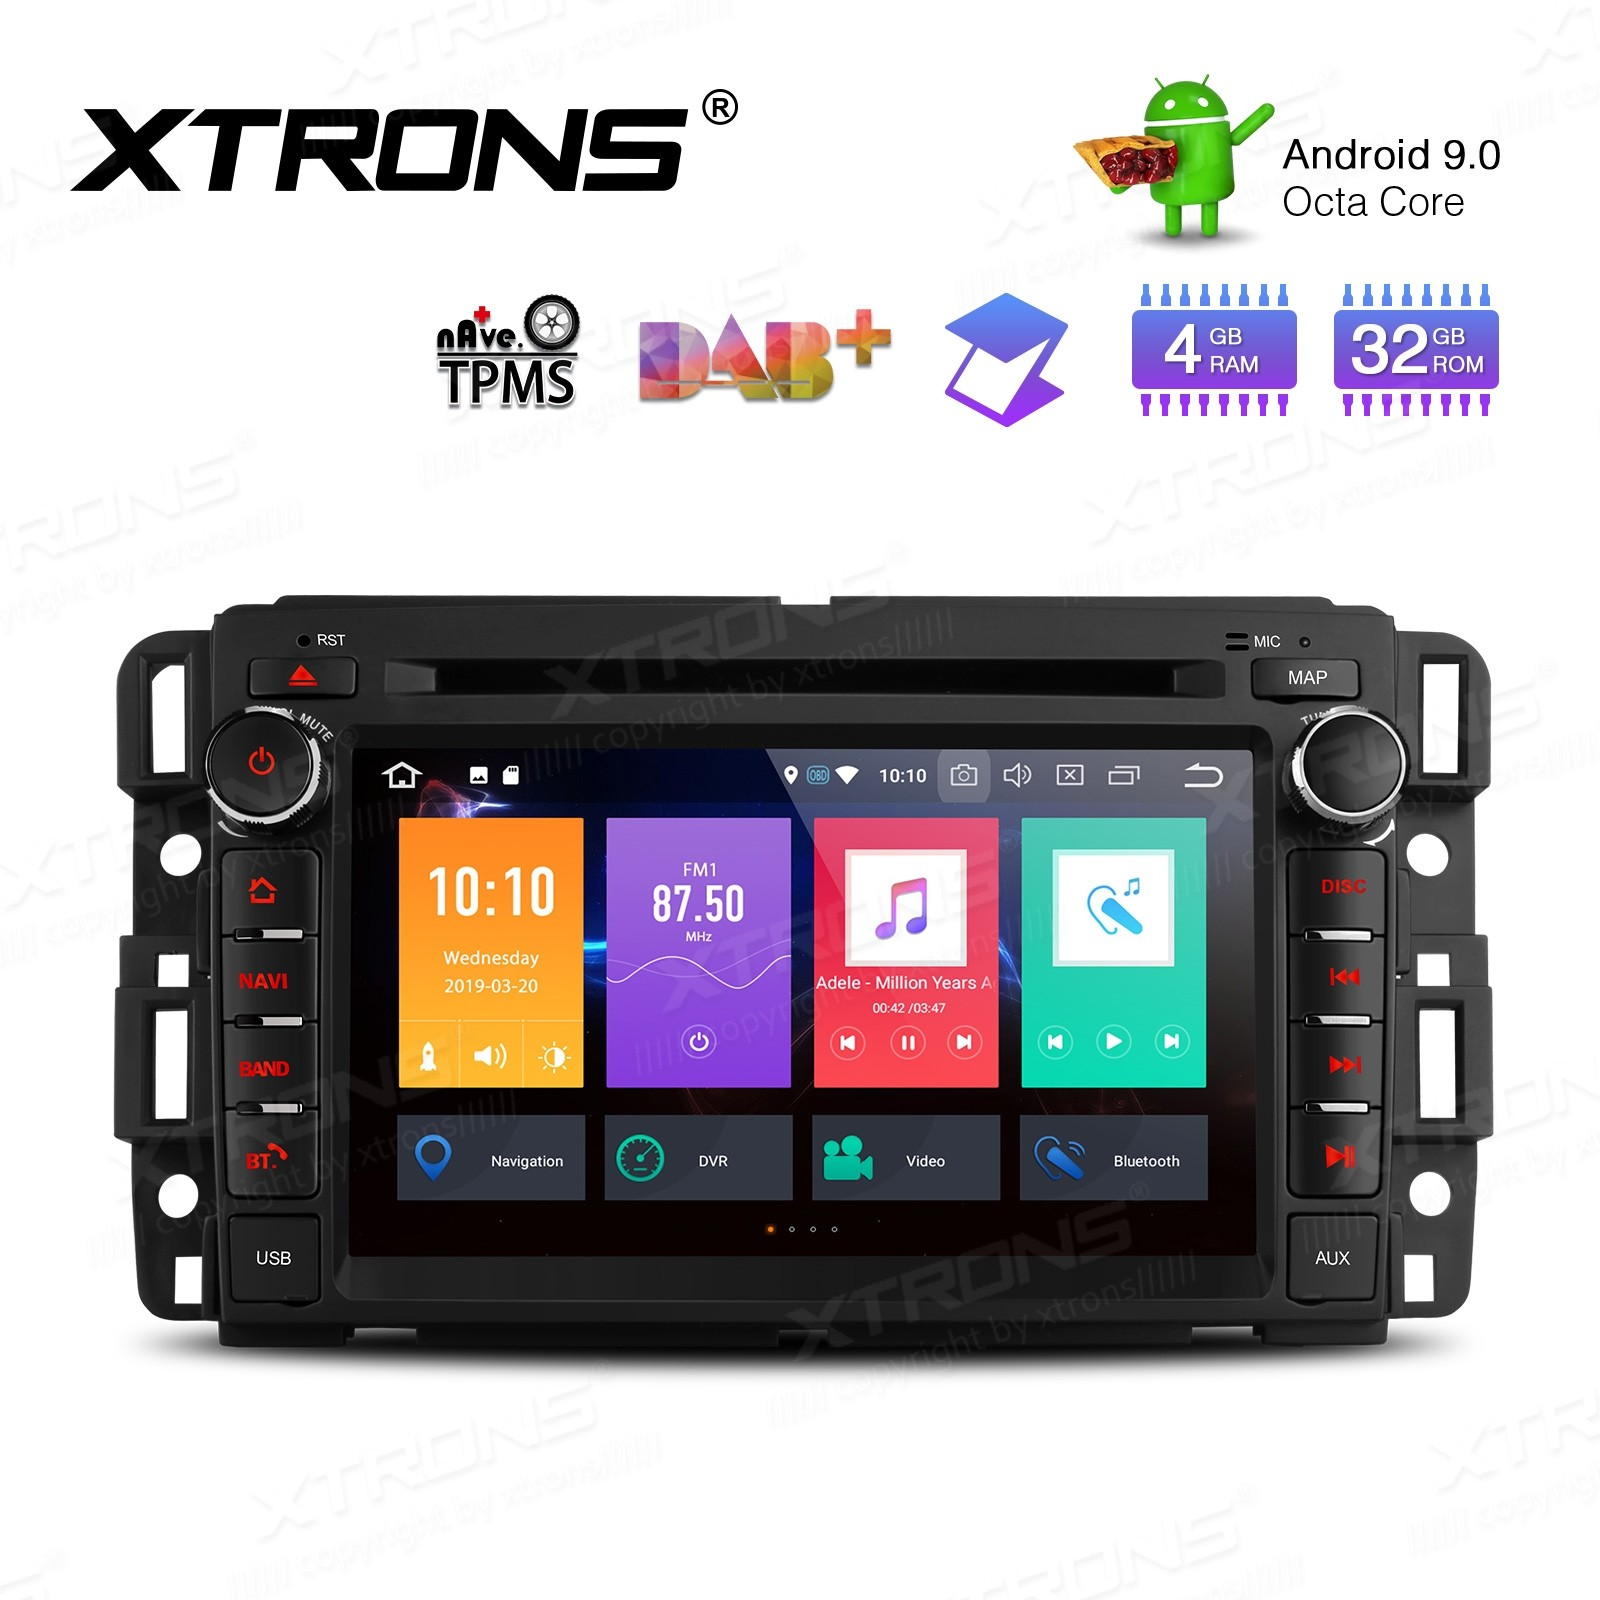 "7"" Android 9.0 Octa-Core 32GB ROM + 4G RAM Car Multimedia DVD Player with GPS support car auto play Custom fit for Chevrolet / Buick / GMC / HUMMER"